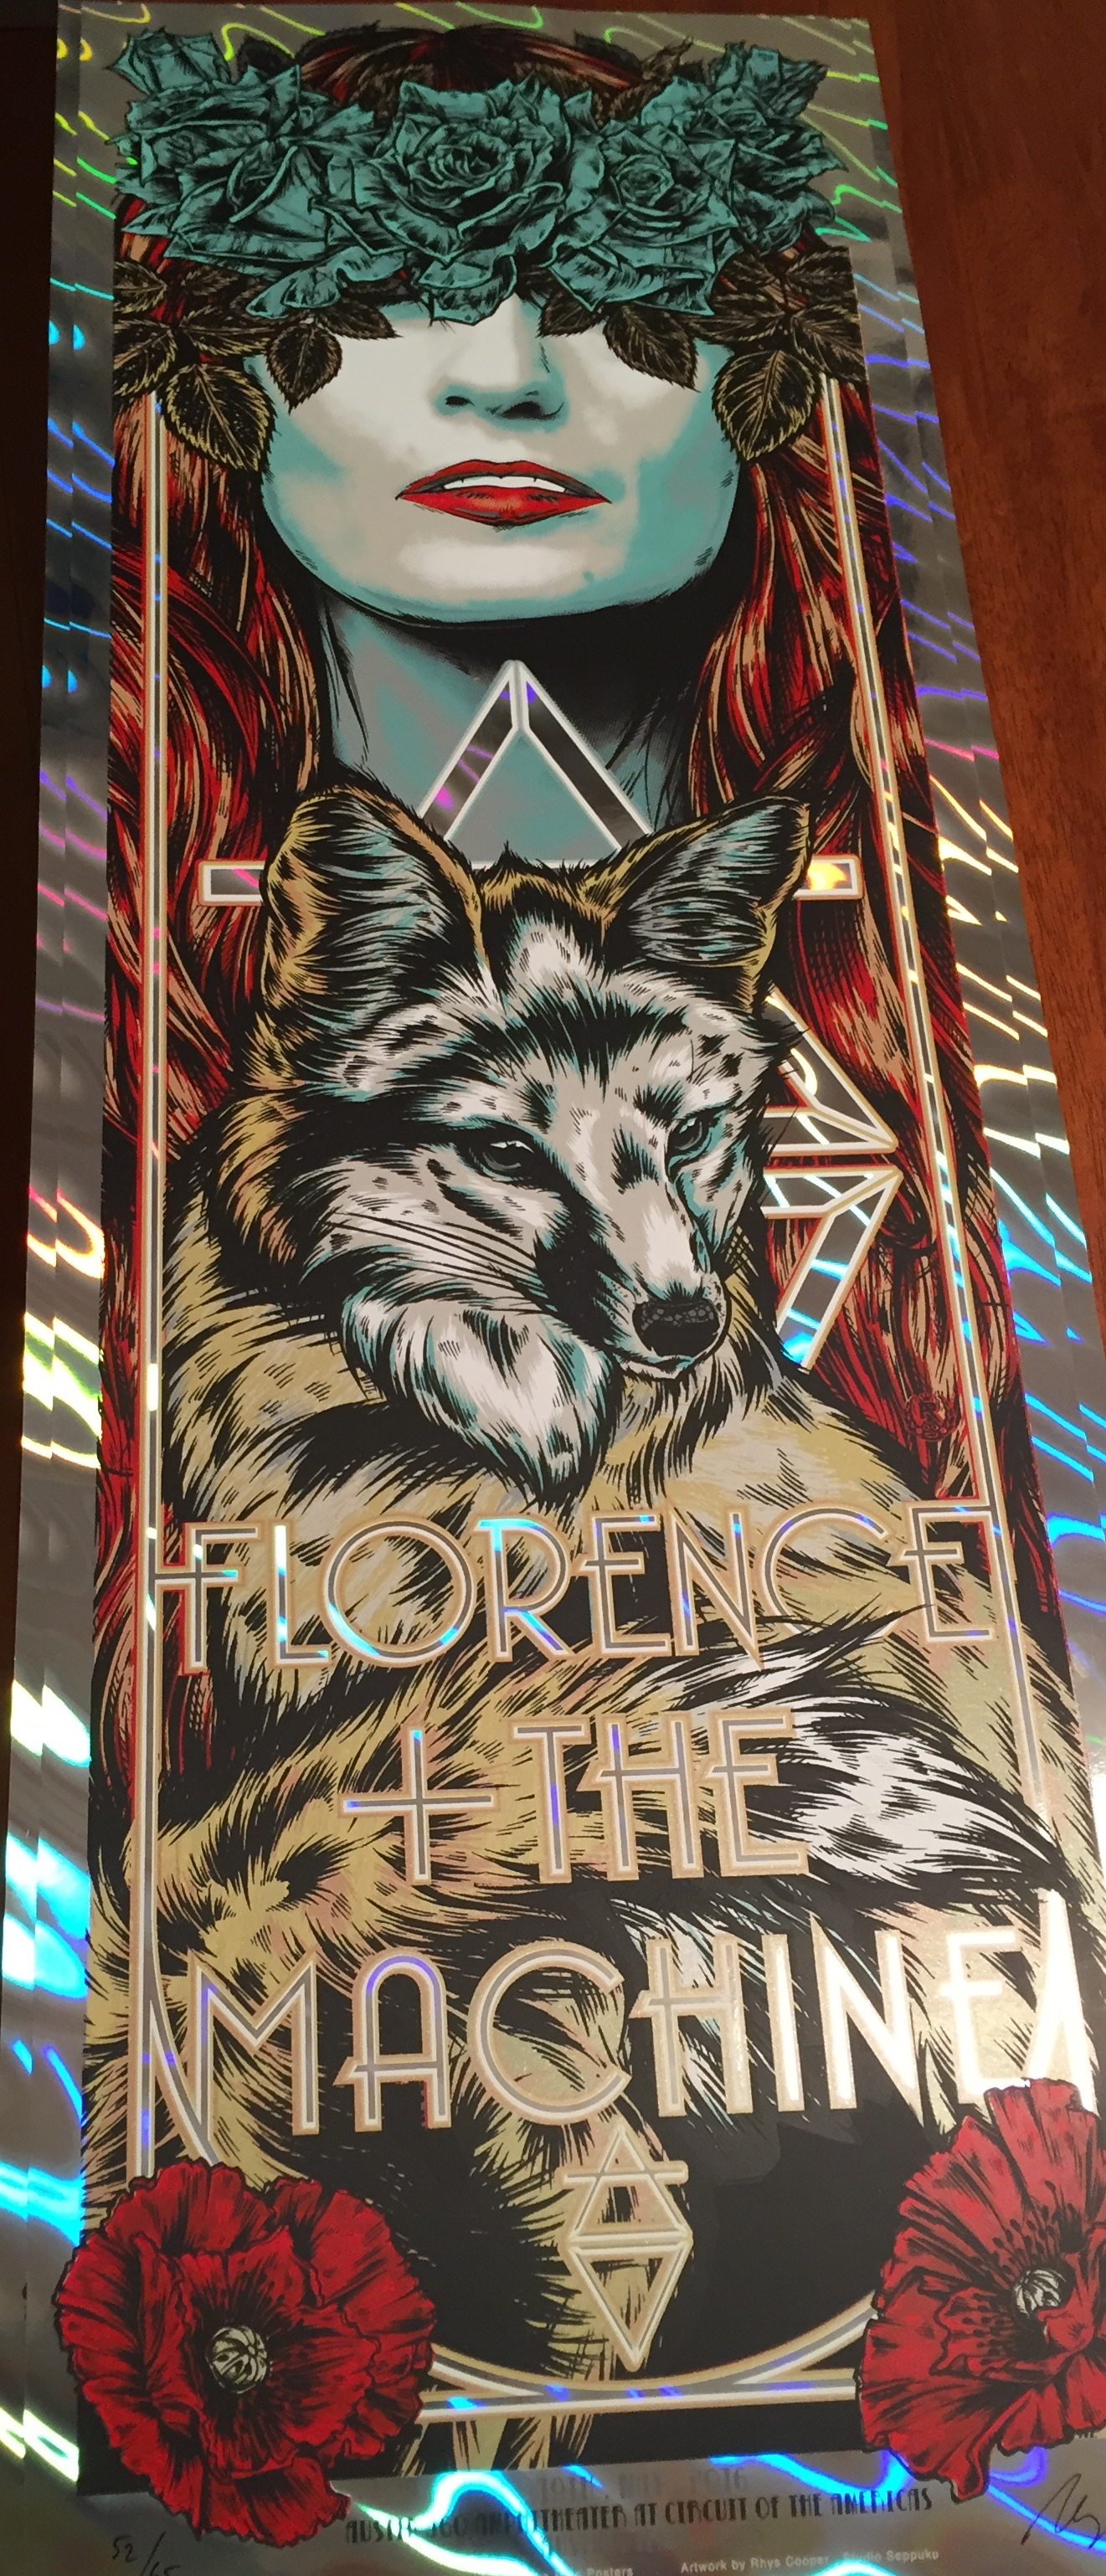 """Florence & the Machine - Austin, TX 2016"" by Rhys Cooper.  12"" x 36"" 6-color Screenprint.  Ed of 65 S/N.  $65 (Holographic foil variant)"